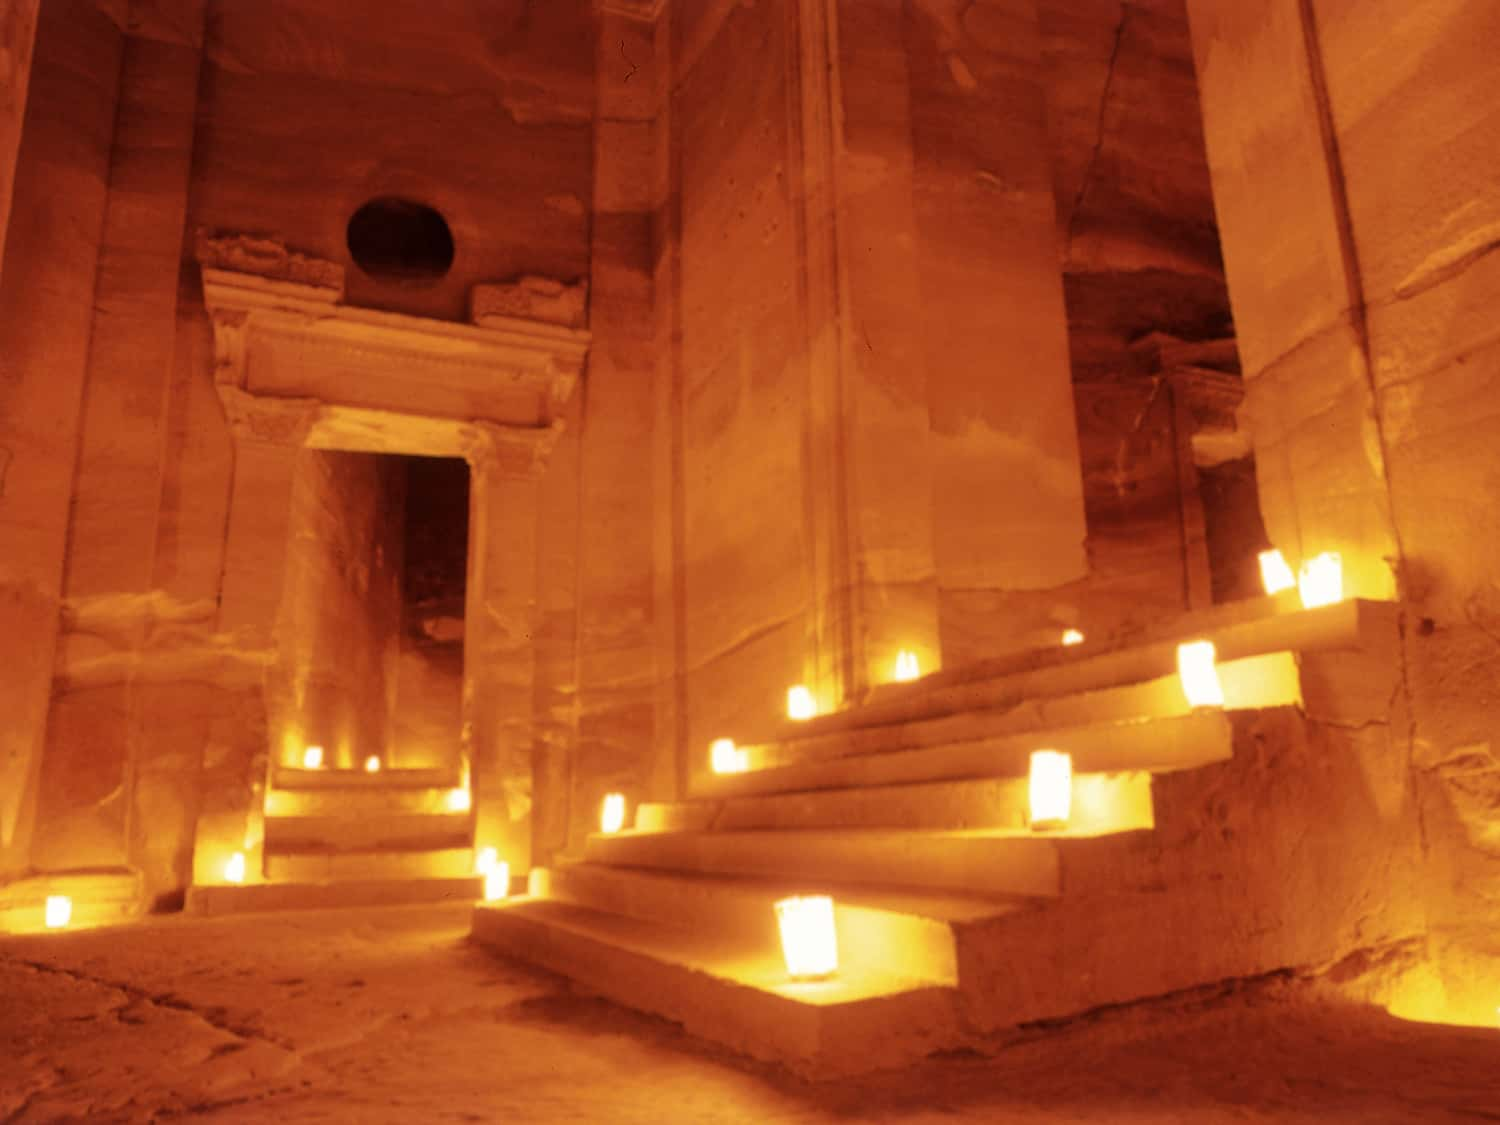 stone steps and doorways inside the Treasury lit up with candles